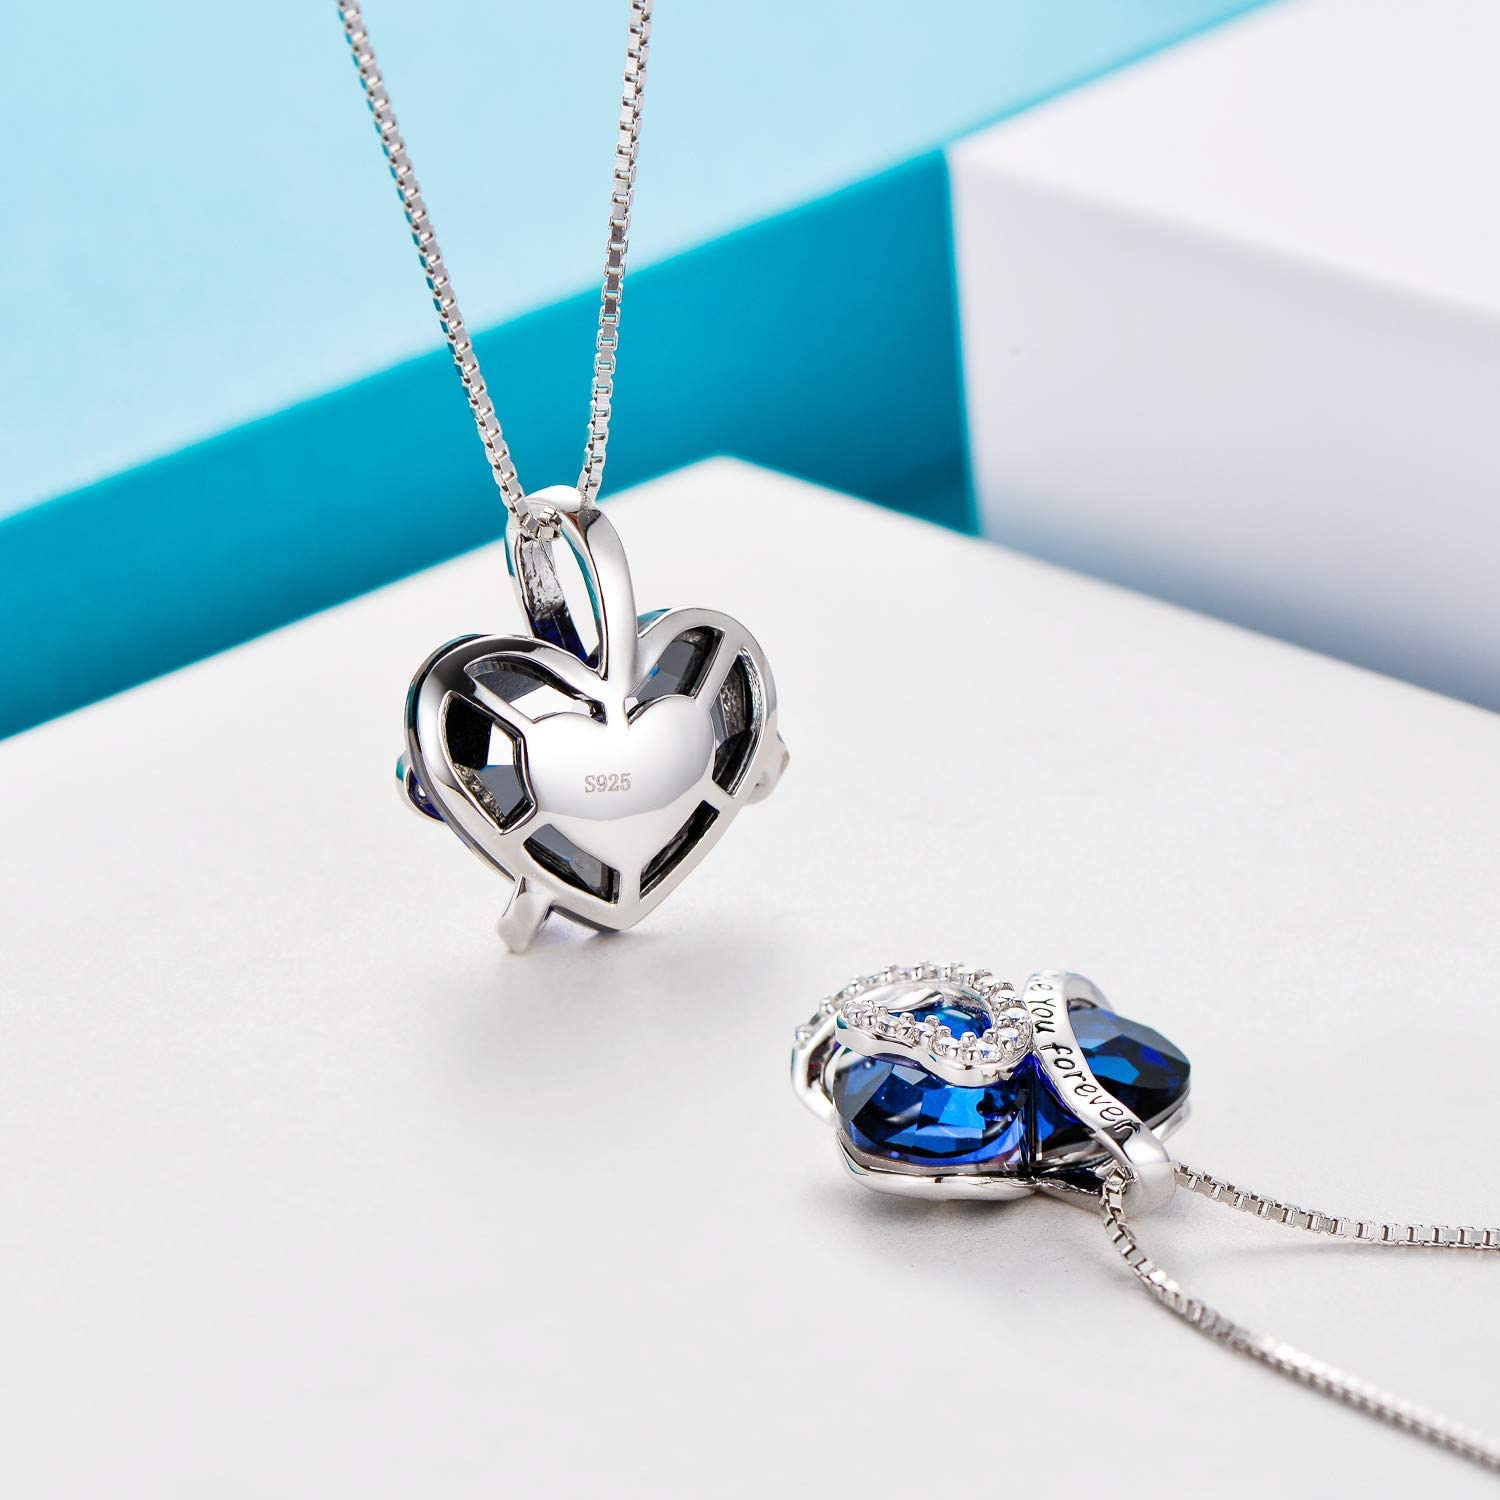 The Starry Night Meet Happiness Heart Crystal Two Piece Suit Four Leaf Flower Pendant Silver Jewelry